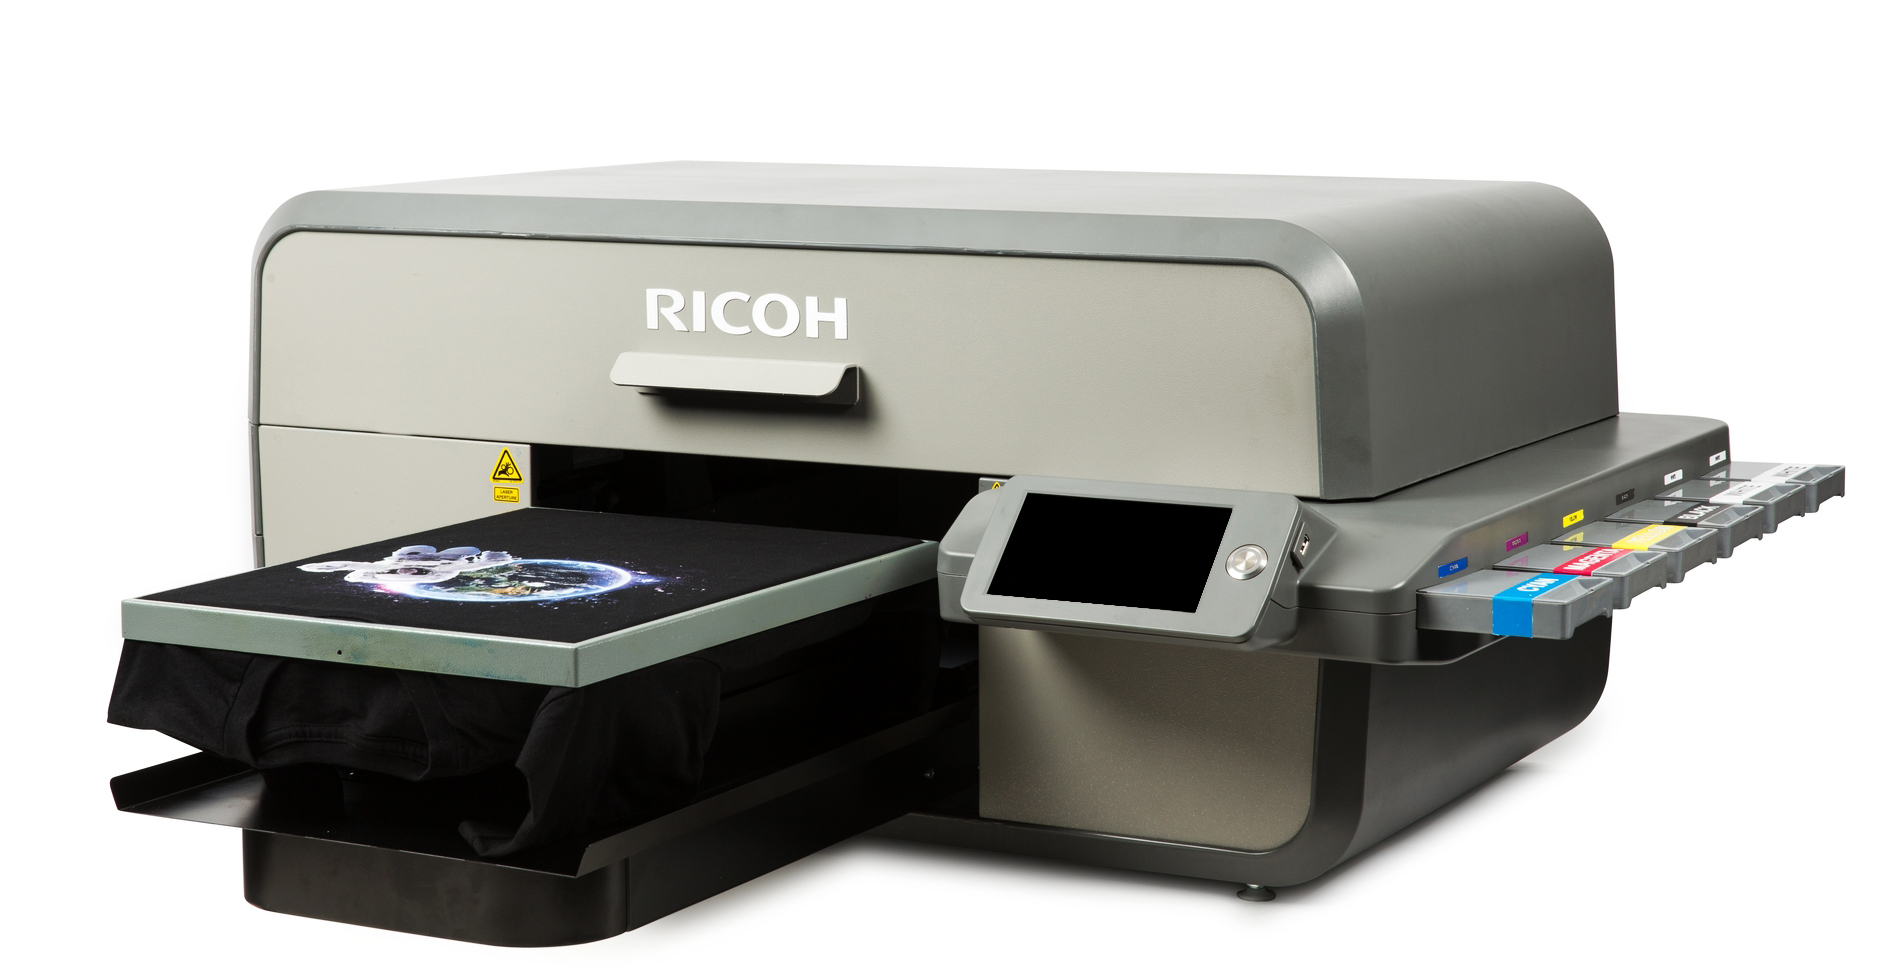 Ricoh launches two new Direct to Garment printers